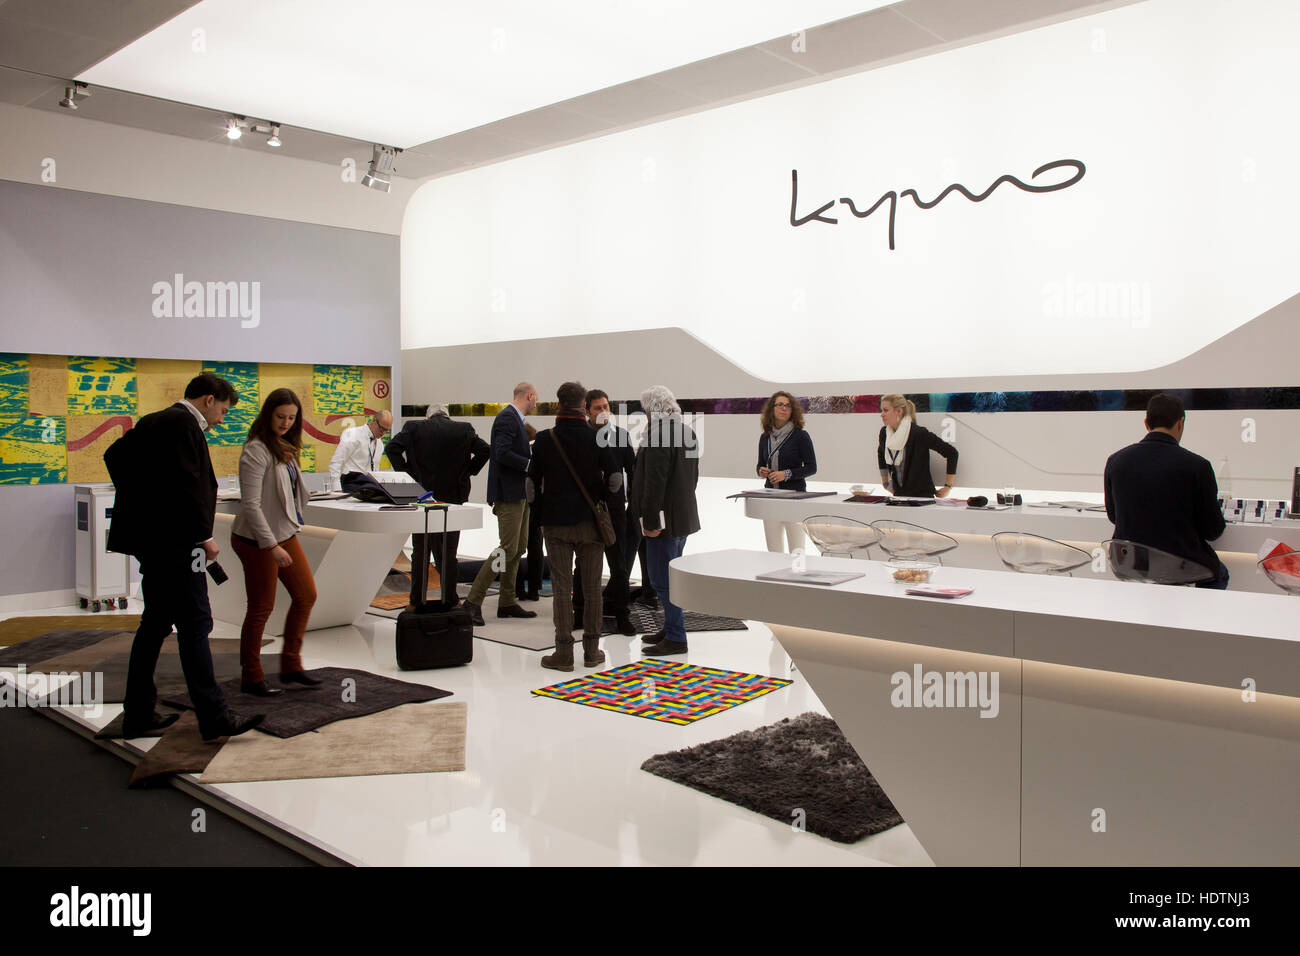 Germany Cologne Imm Cologne International Furniture Fair Imm  # Muebles Koln Internacional